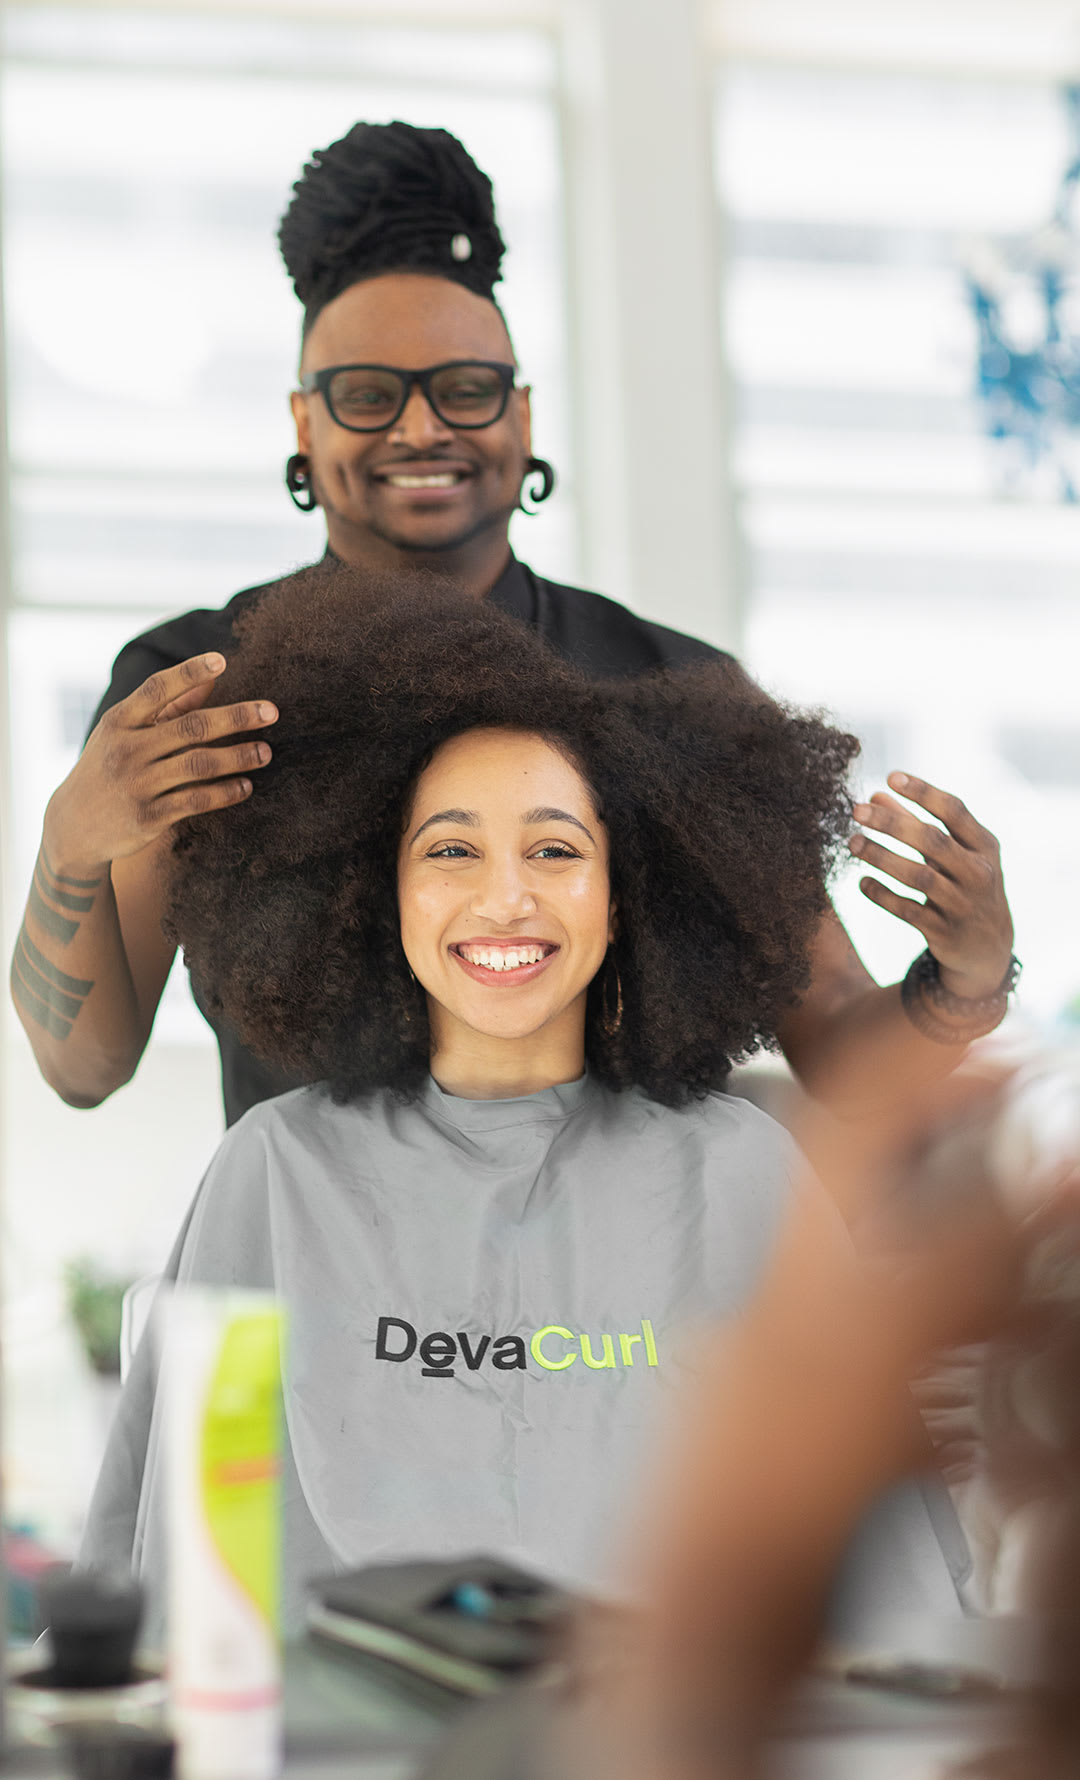 hair stylist fluffing curly hair